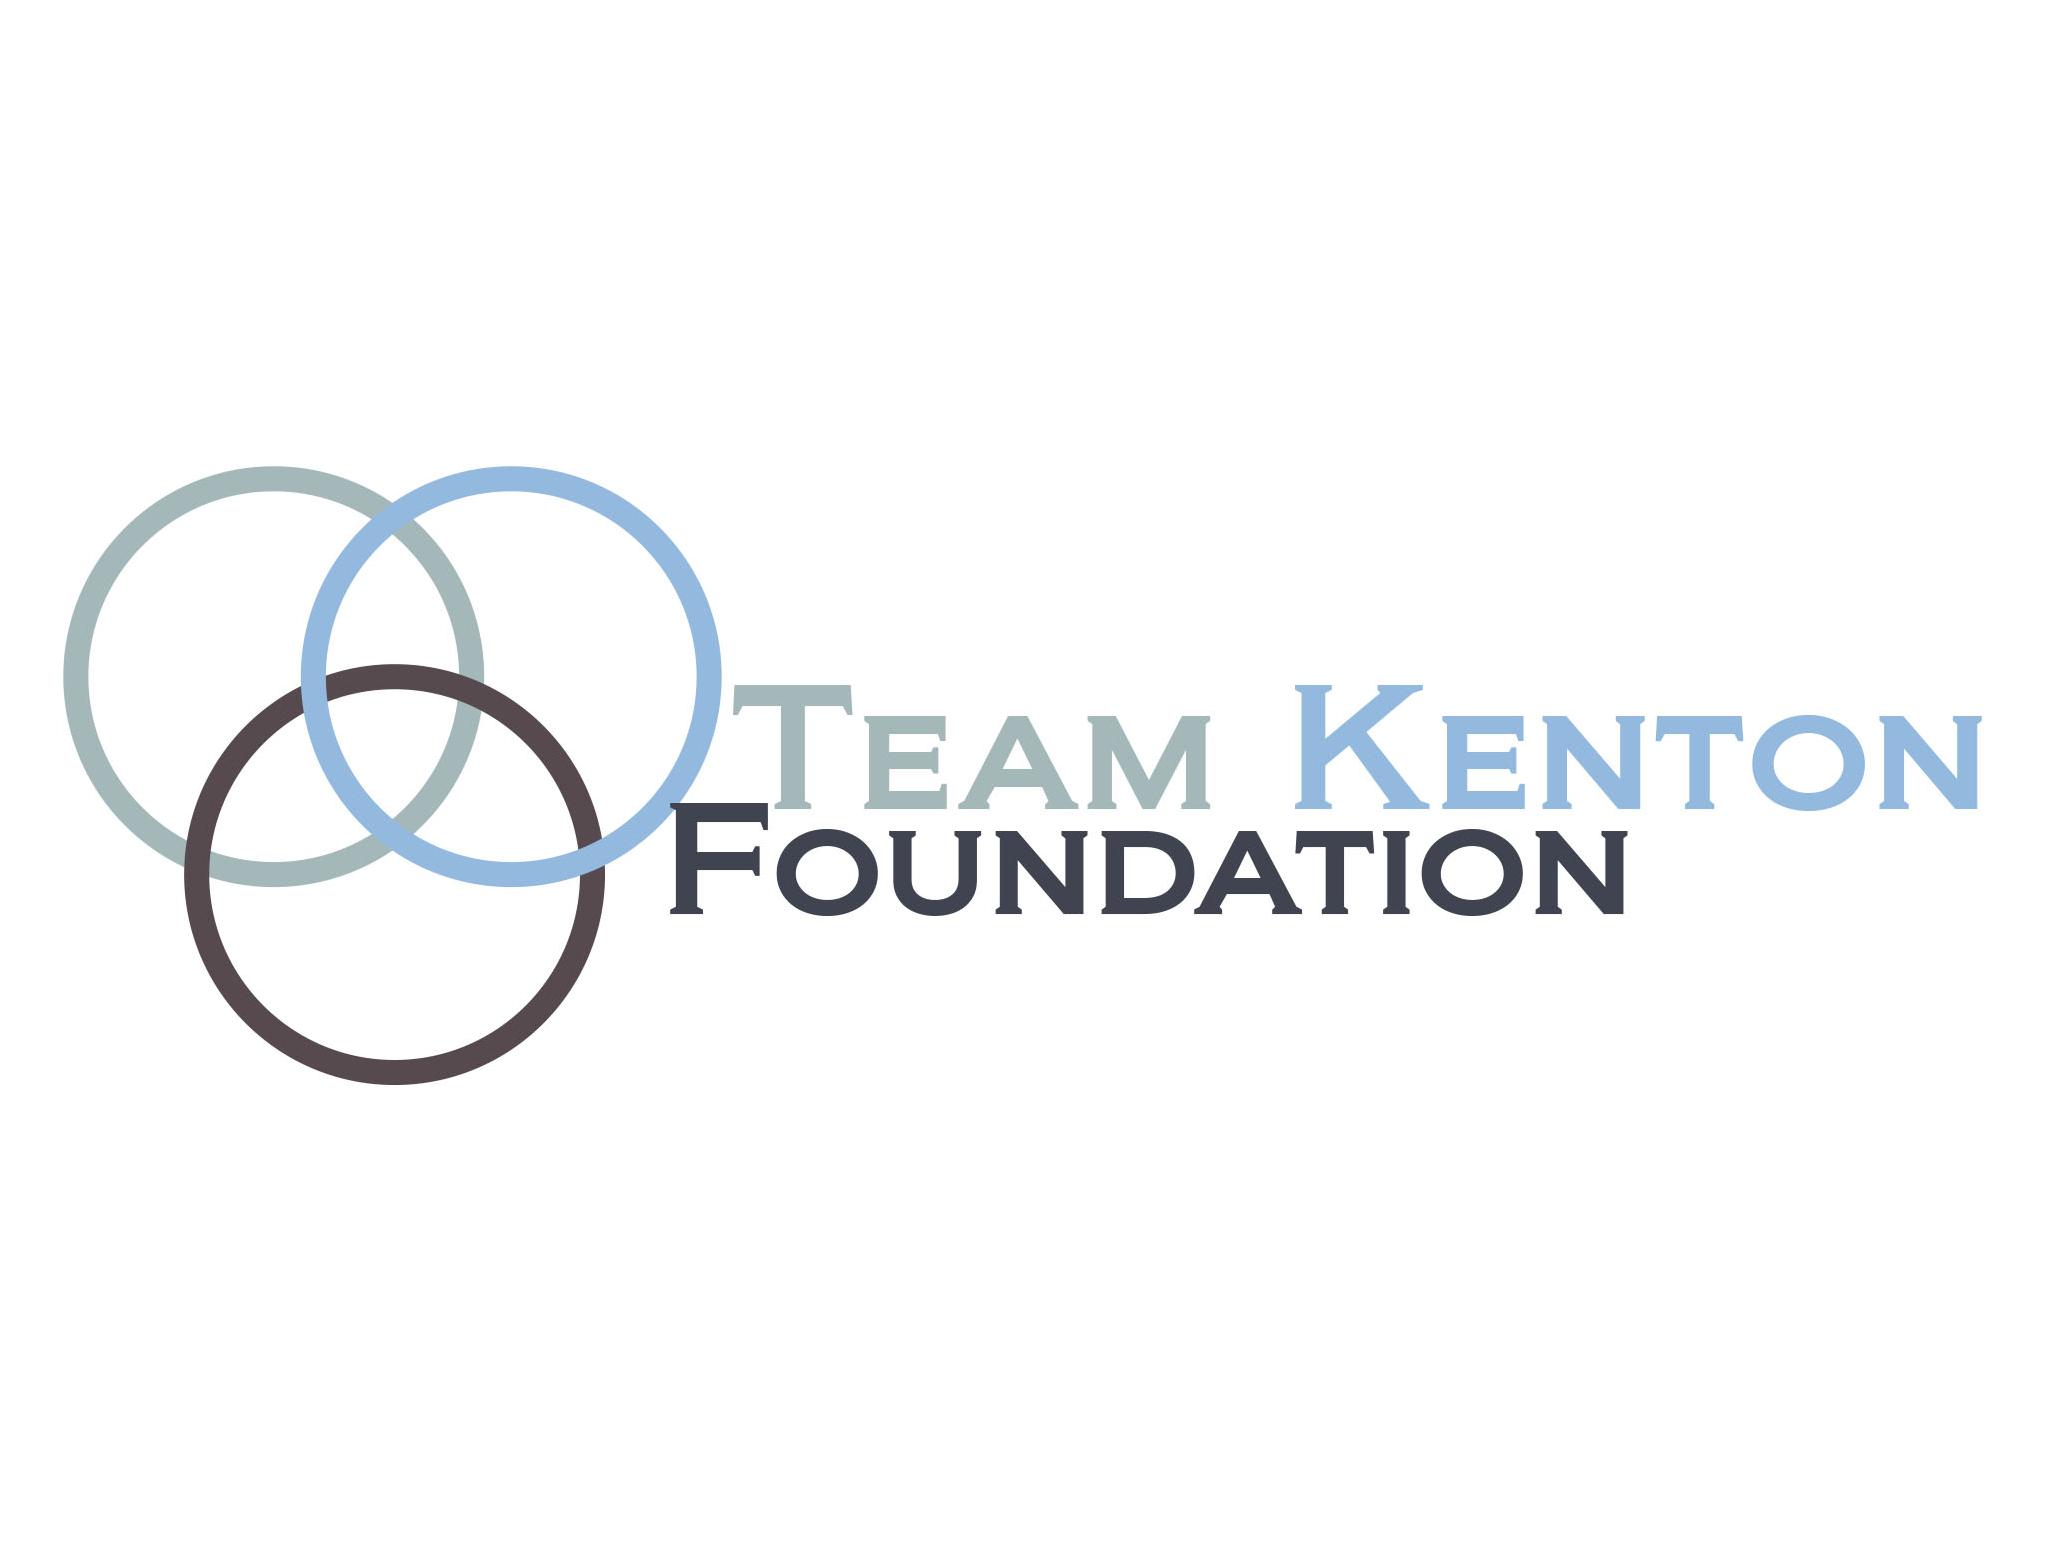 Team Kenton Foundation